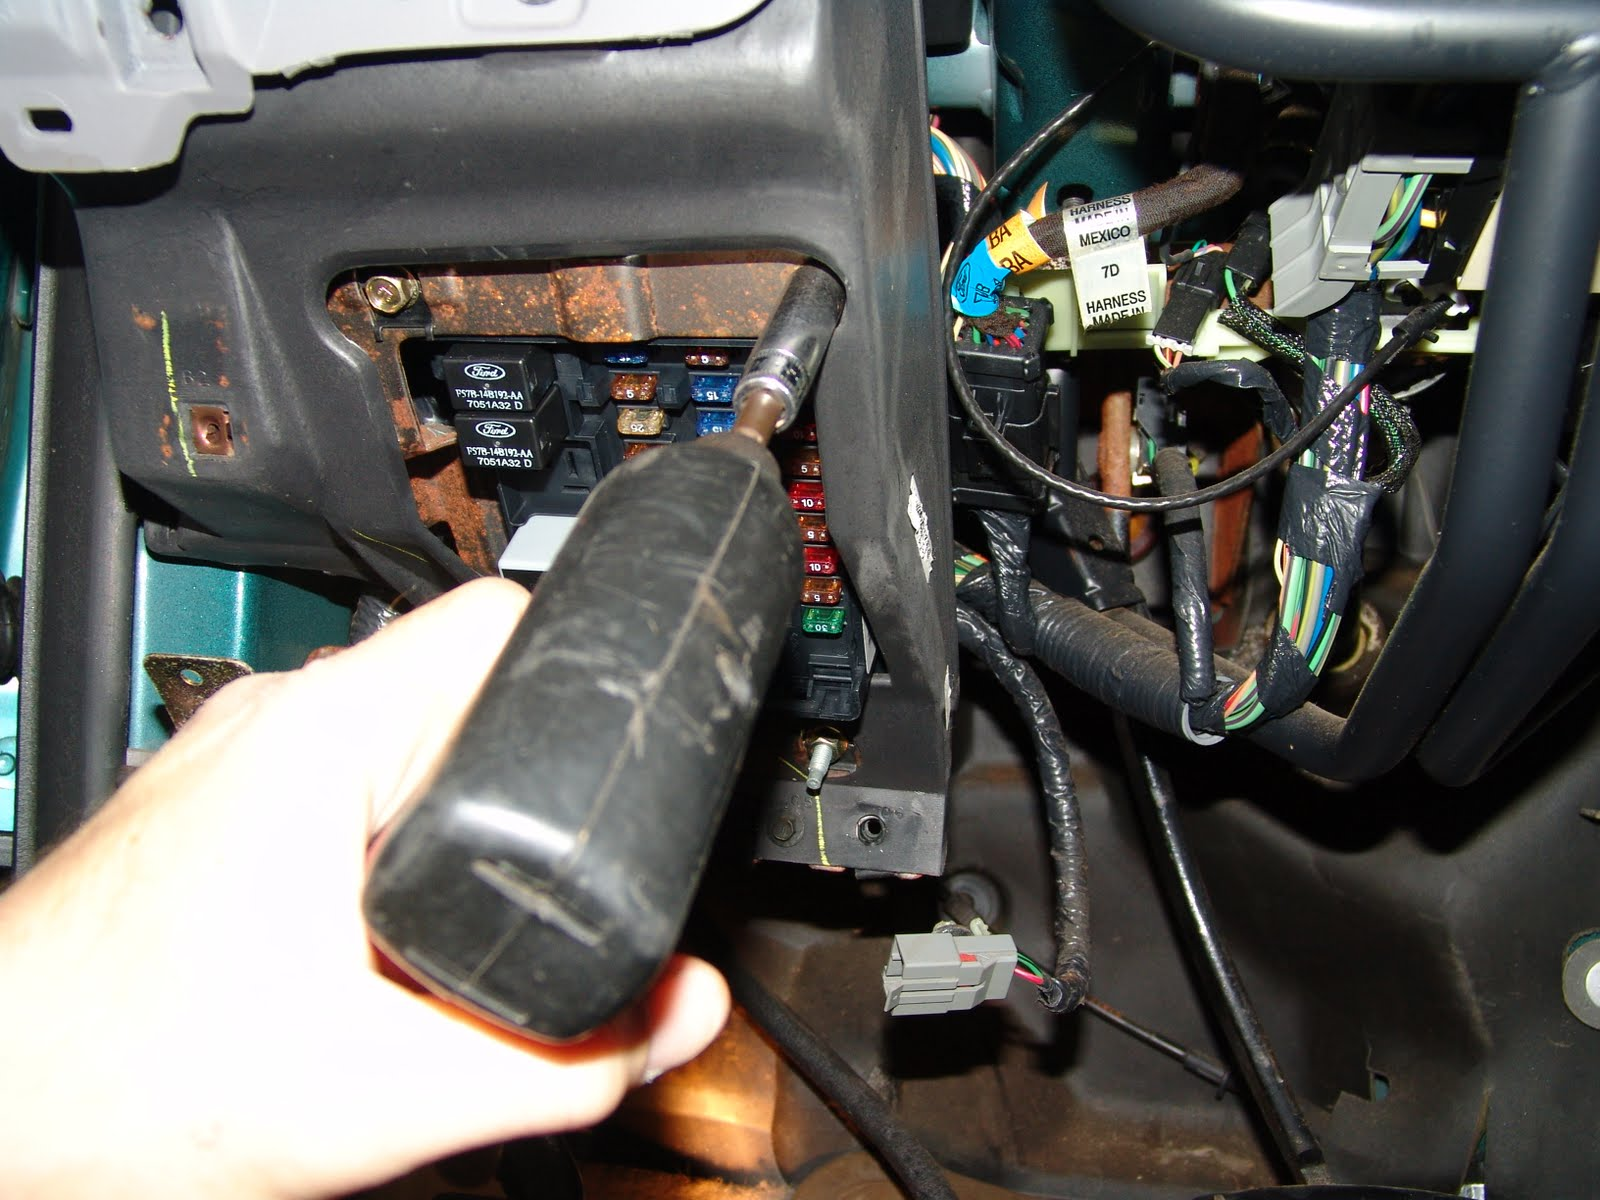 The wiring harnesses can be removed from the back of the fuse box. Two